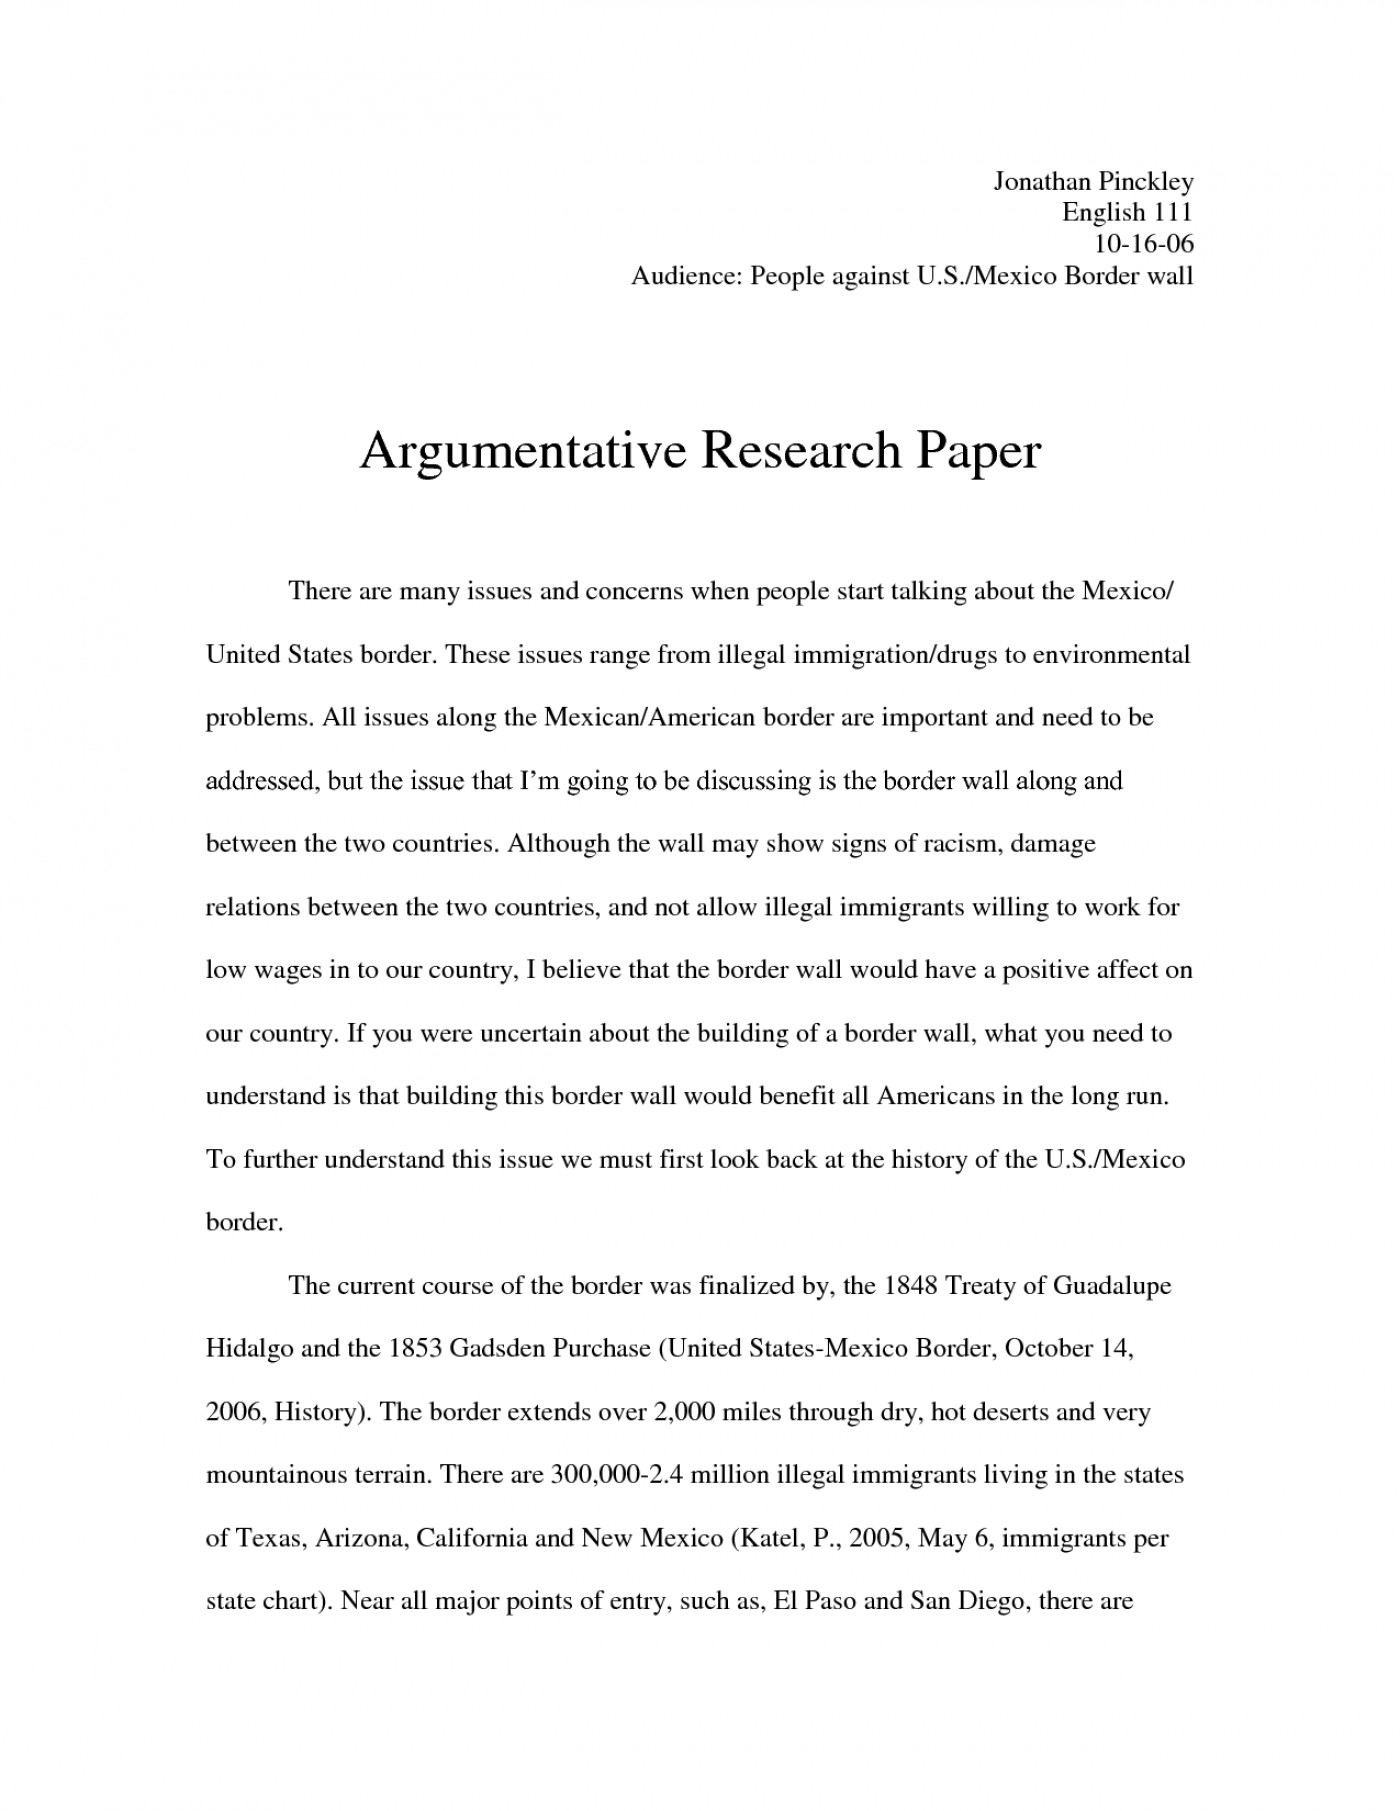 014 Uncategorized Debate20y Argumentative Thesis High School Topics Sentence Starters Outline Worksheet Structure20 For Research Rare A Paper Medical 1400